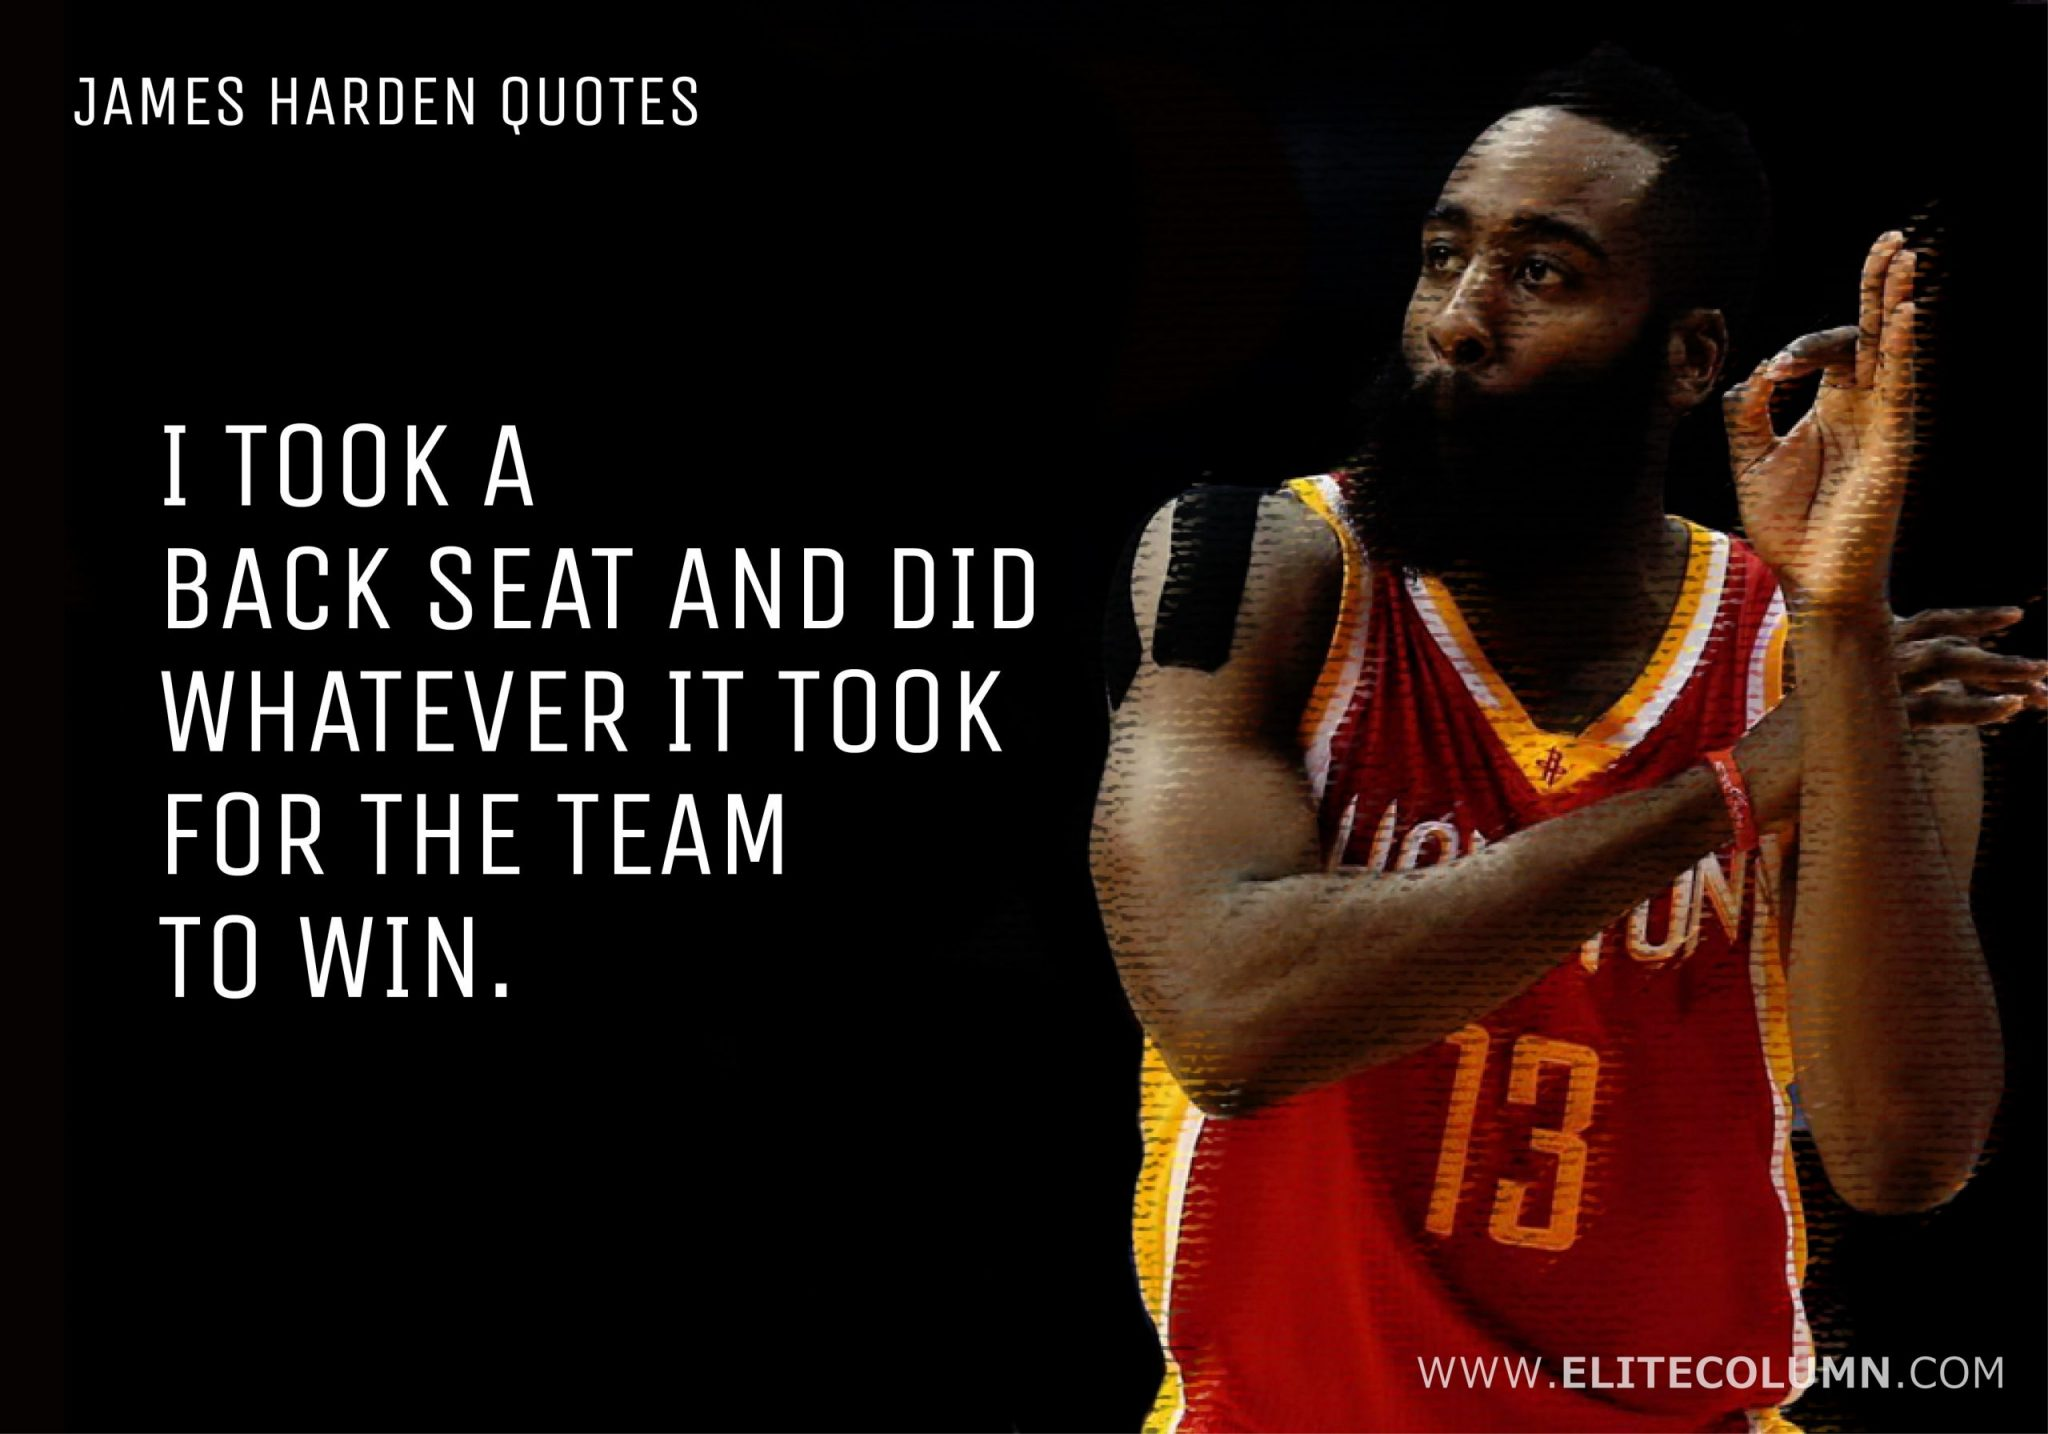 James Harden Quotes (9)